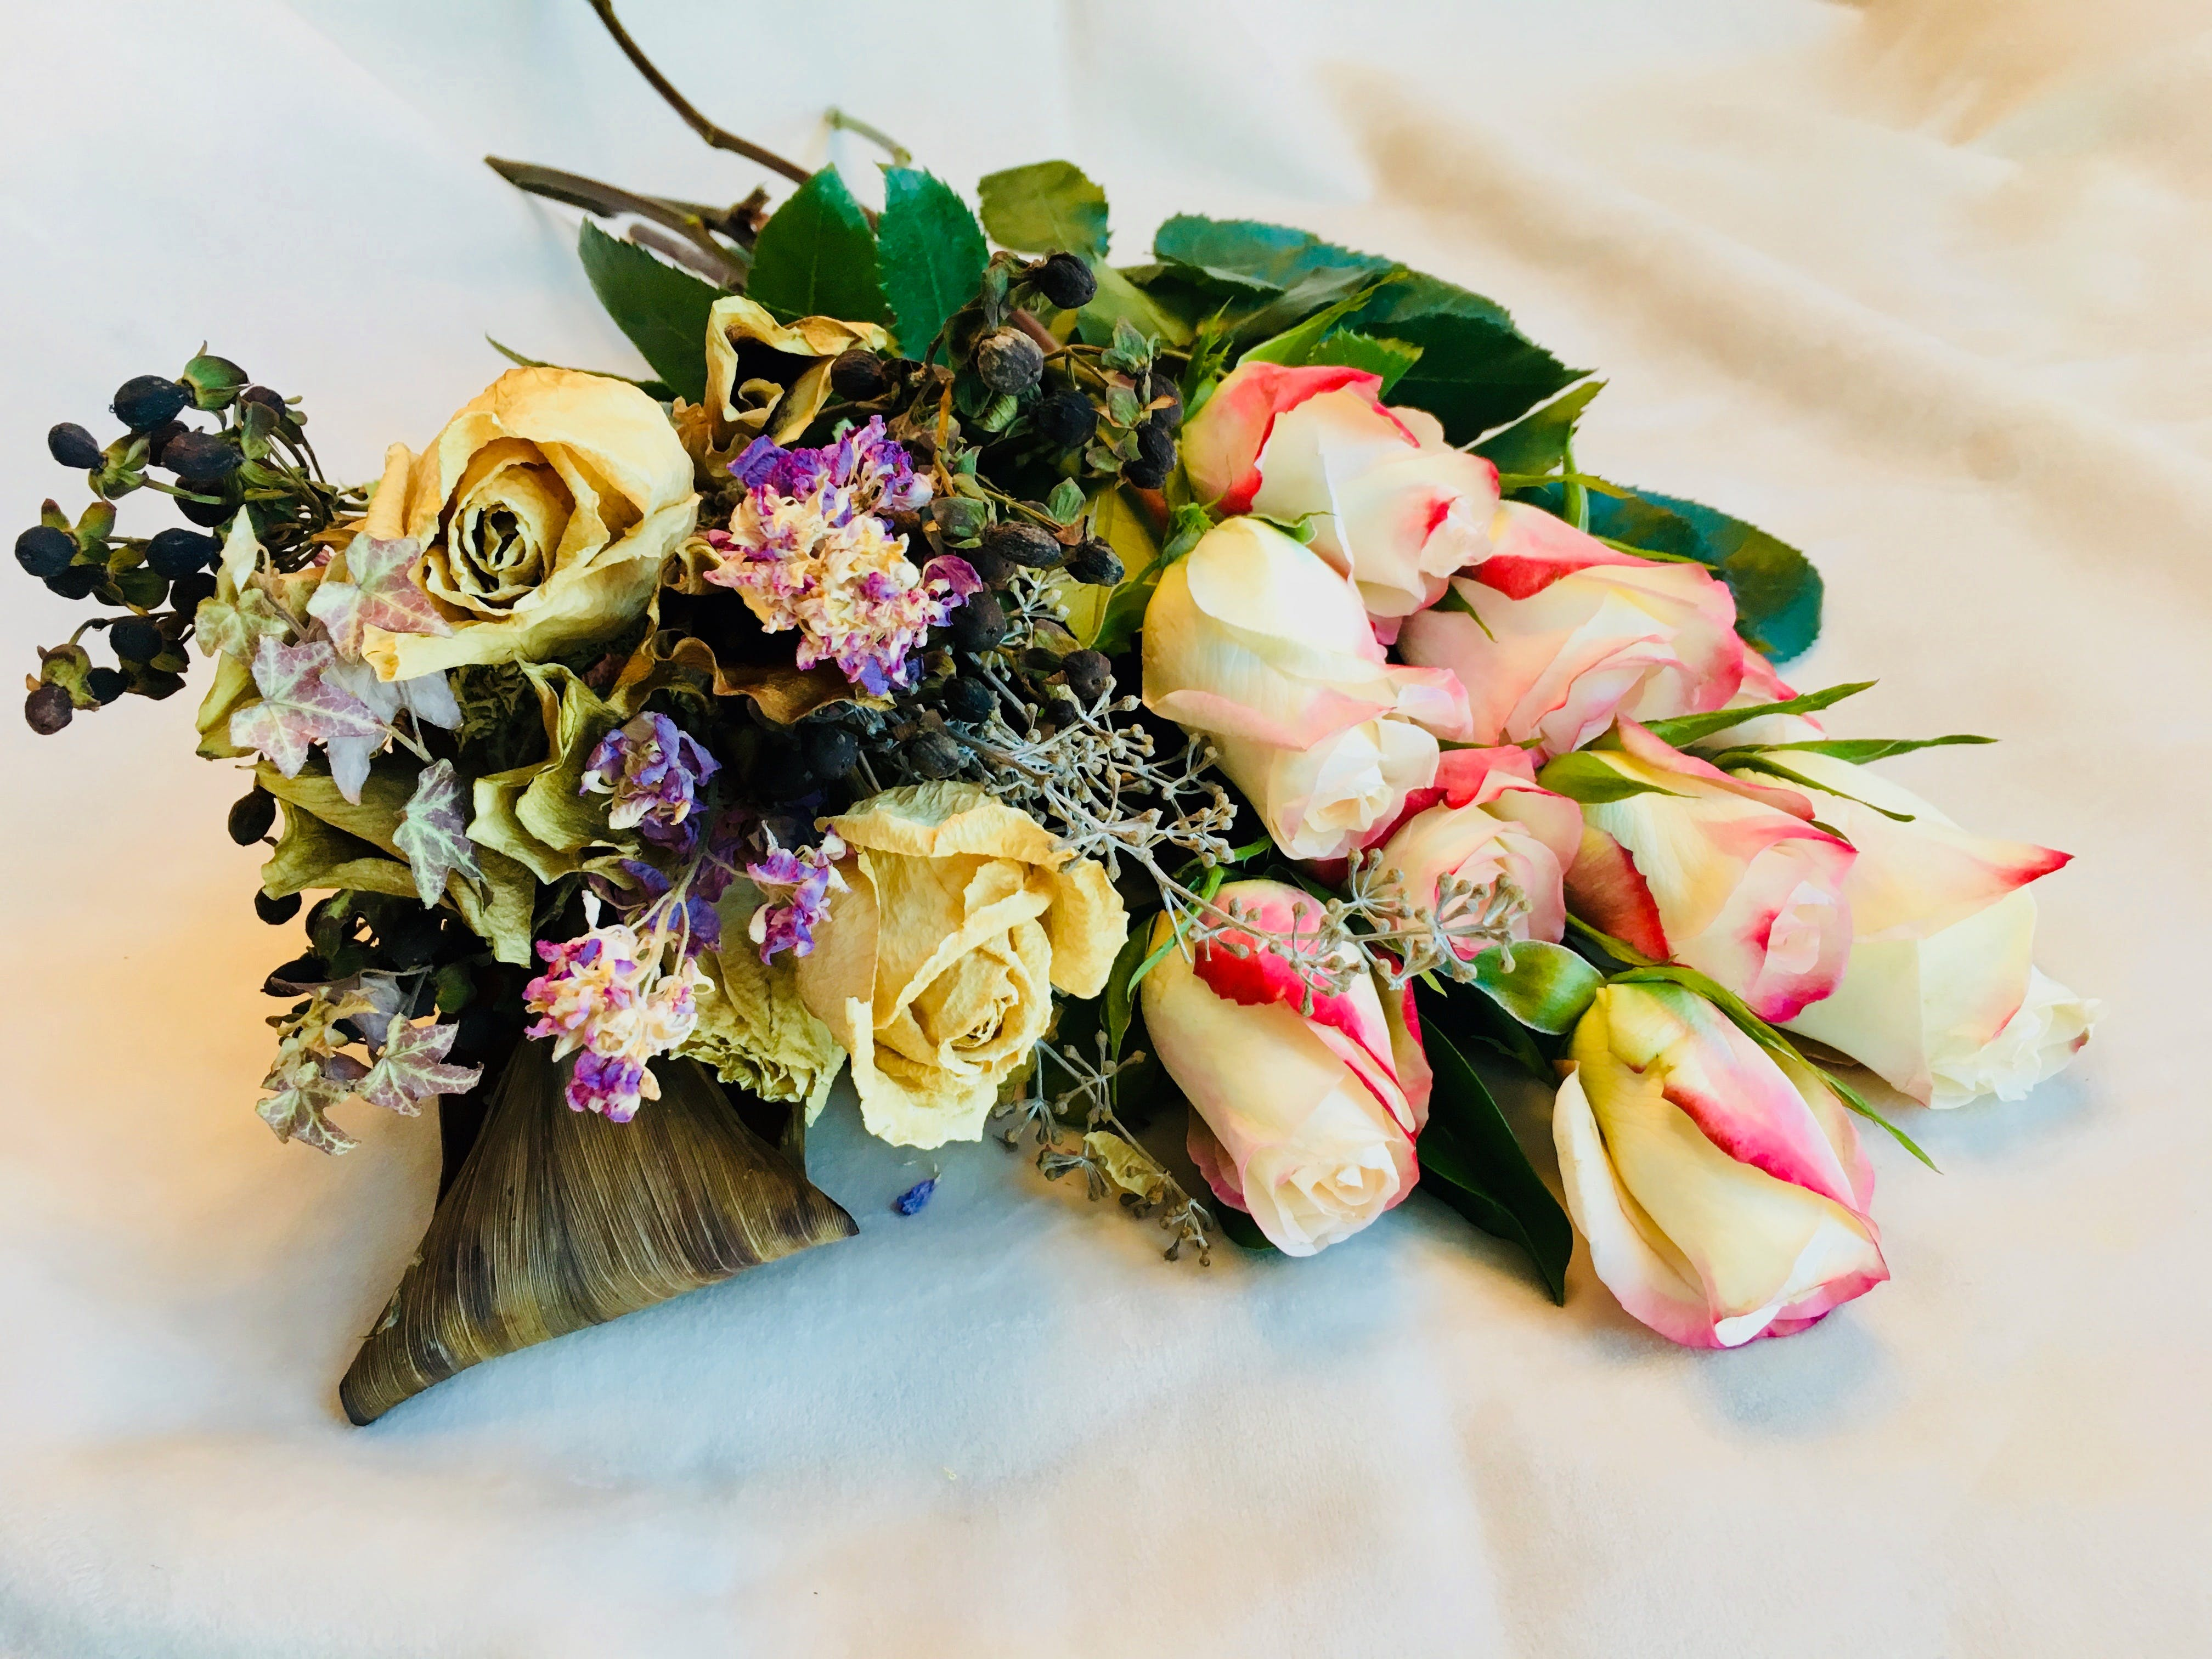 dried flowers with fresh roses, flower bouquet, old and new